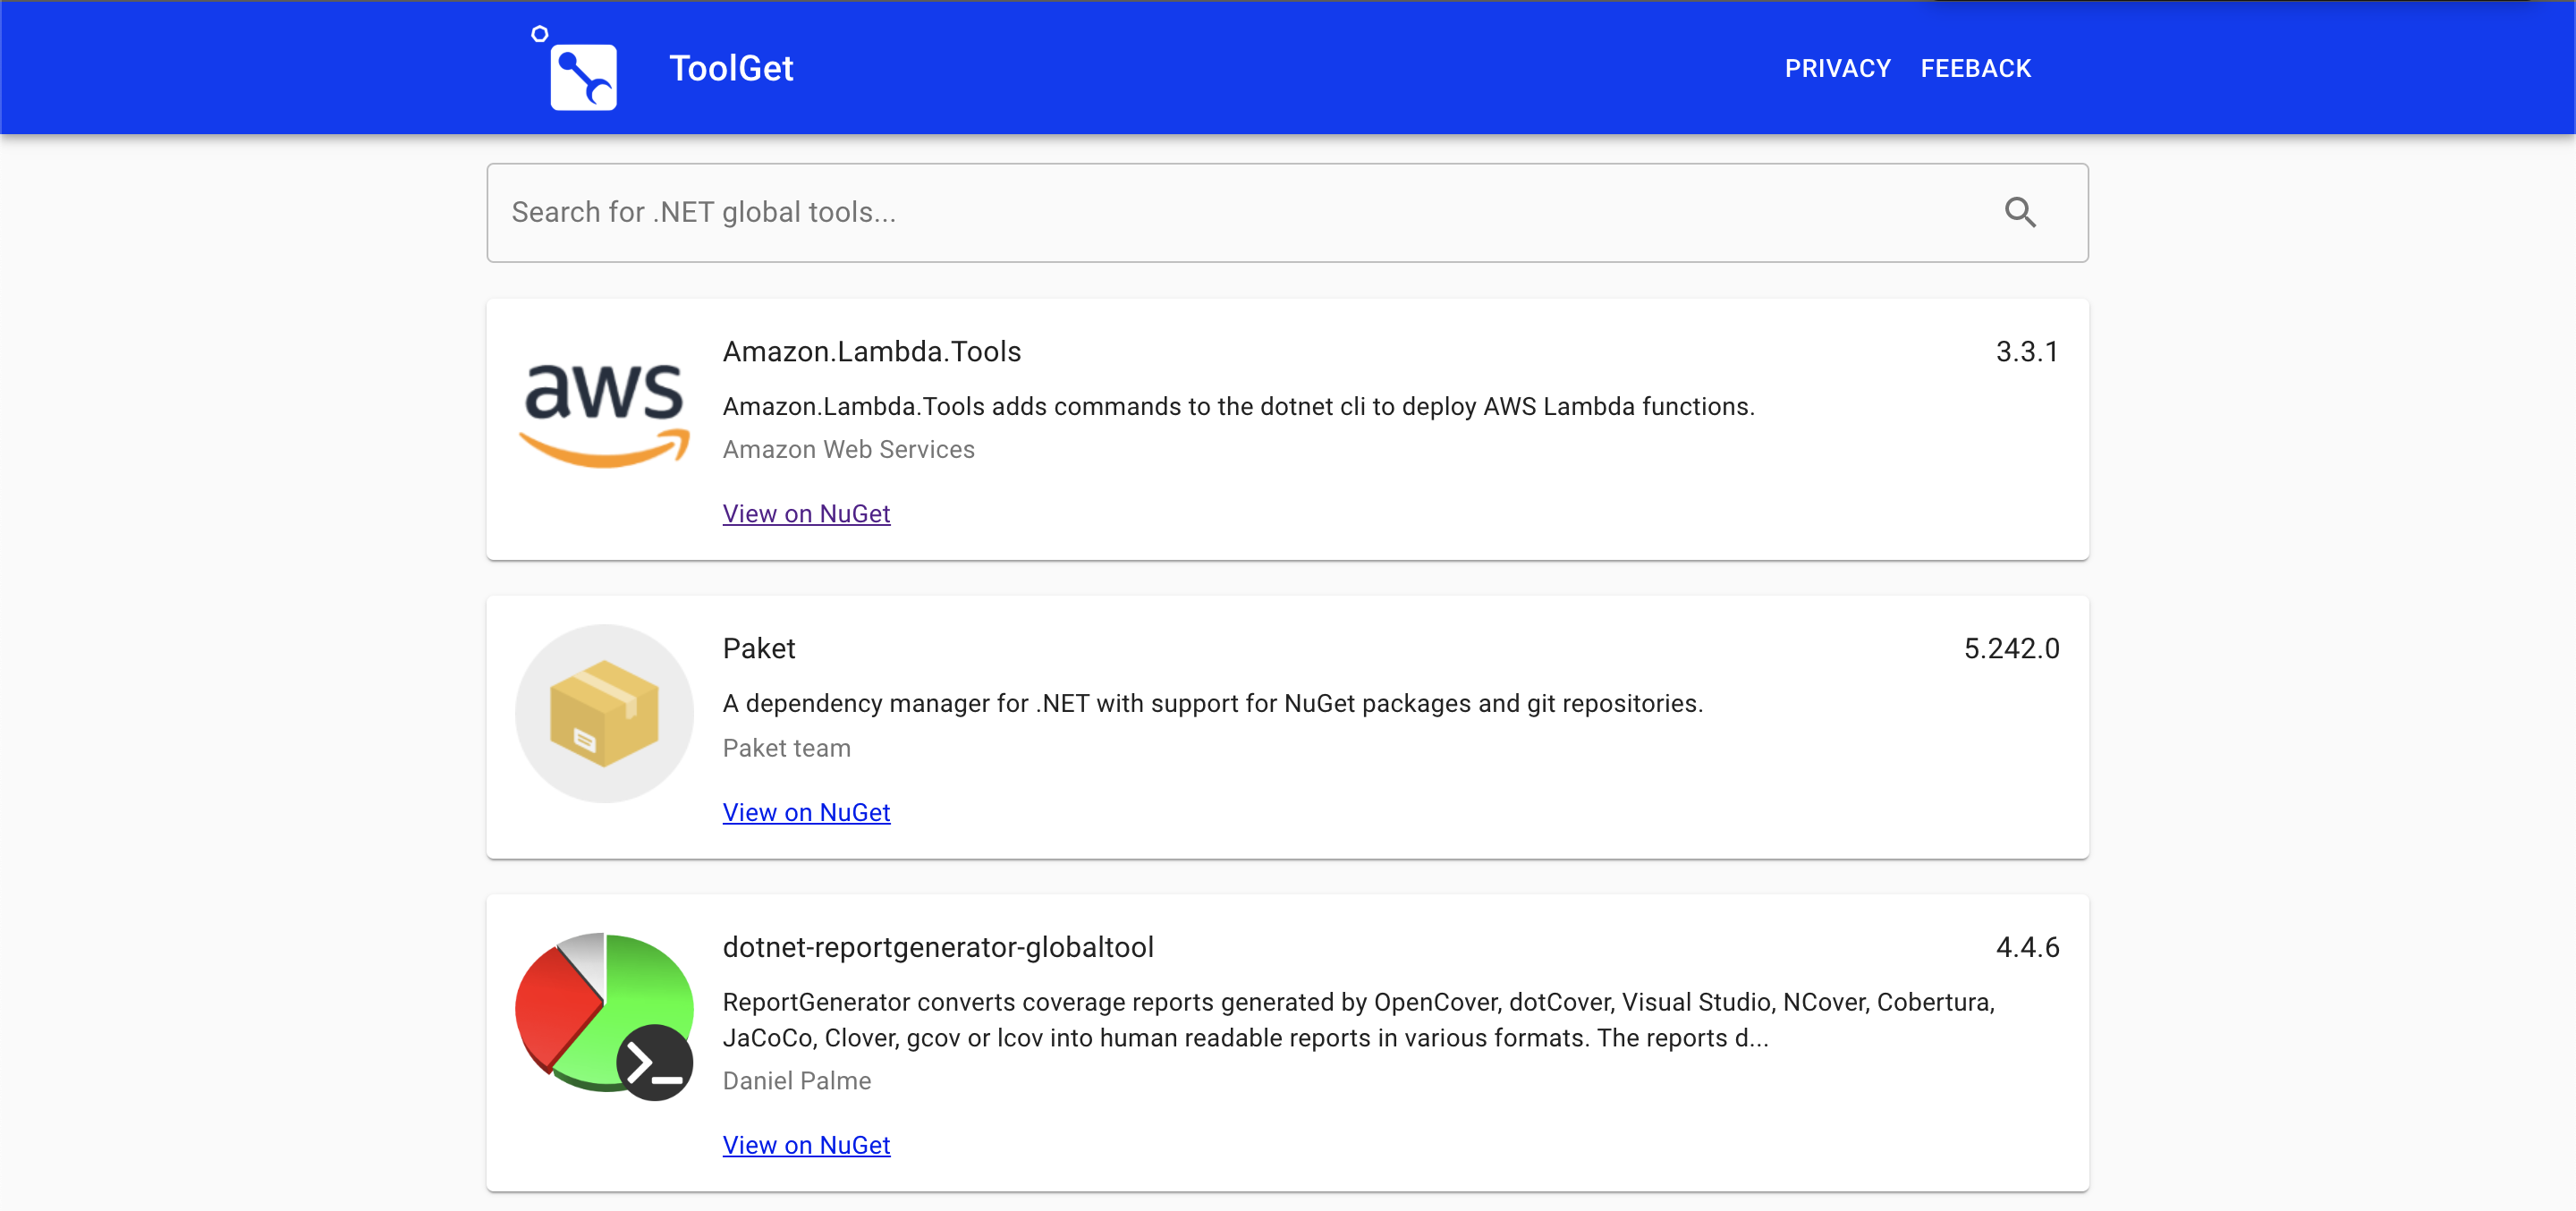 Example ToolGet search